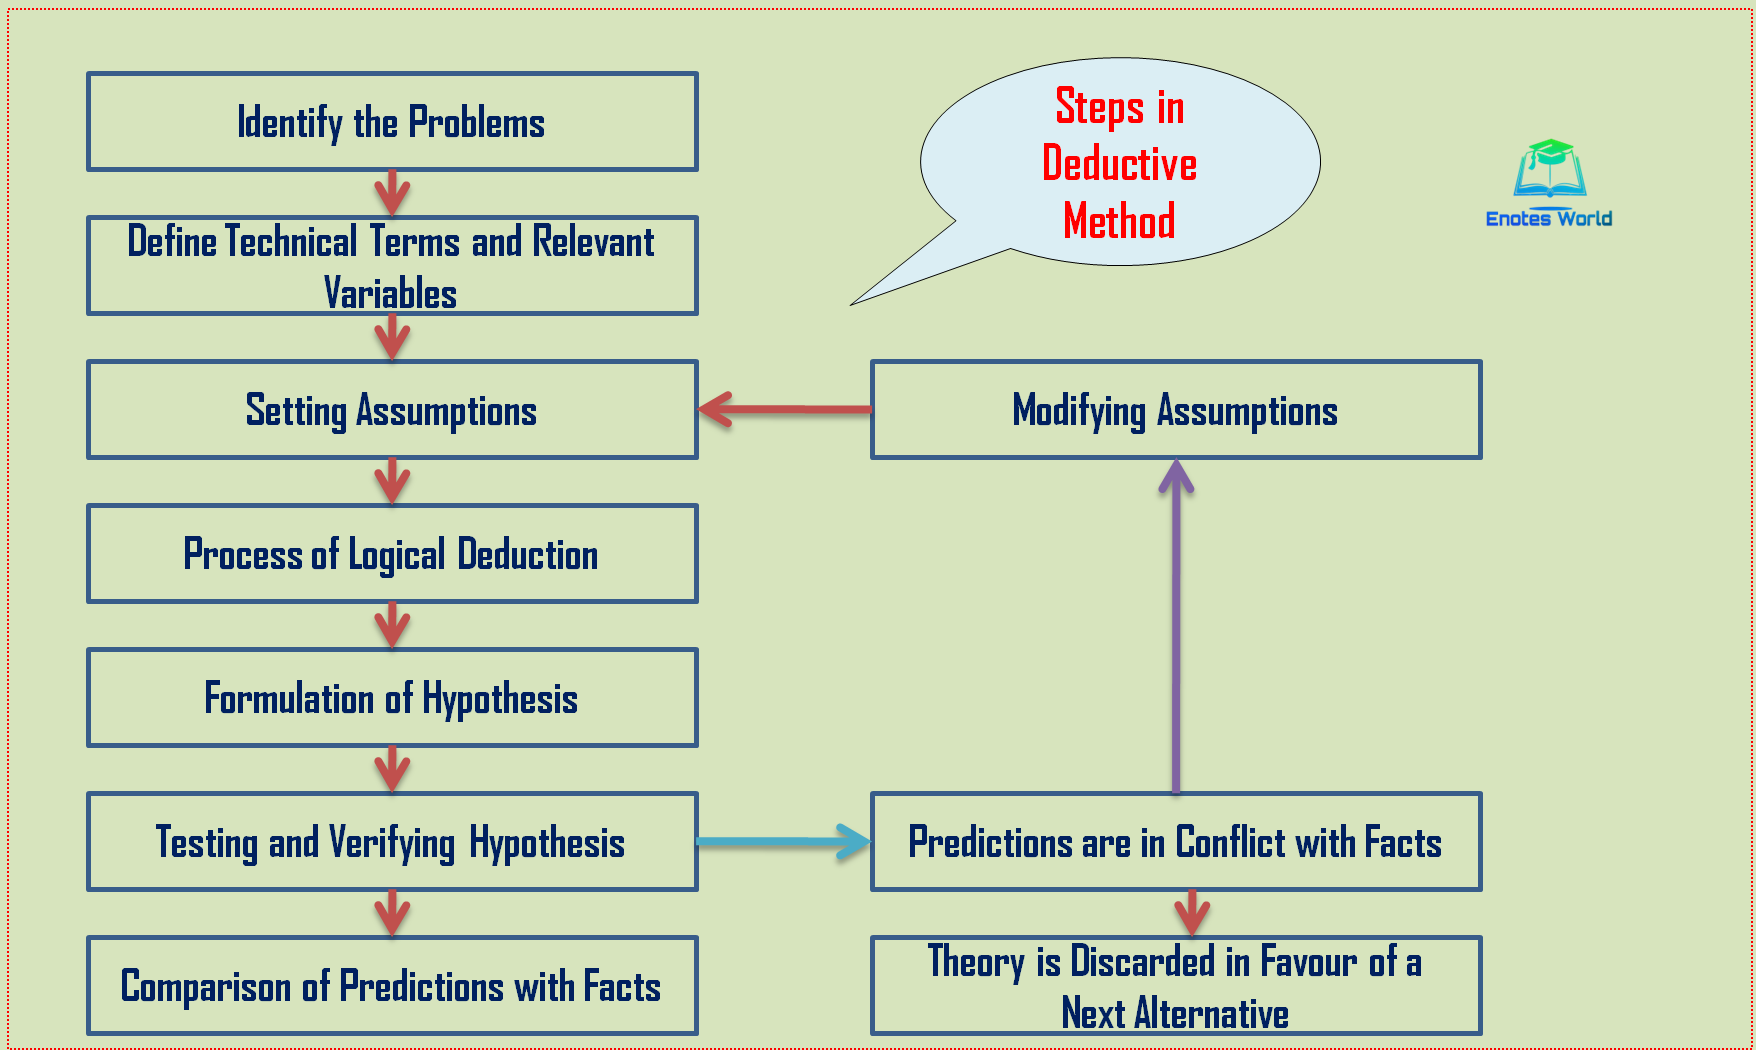 Steps involved in deductive method